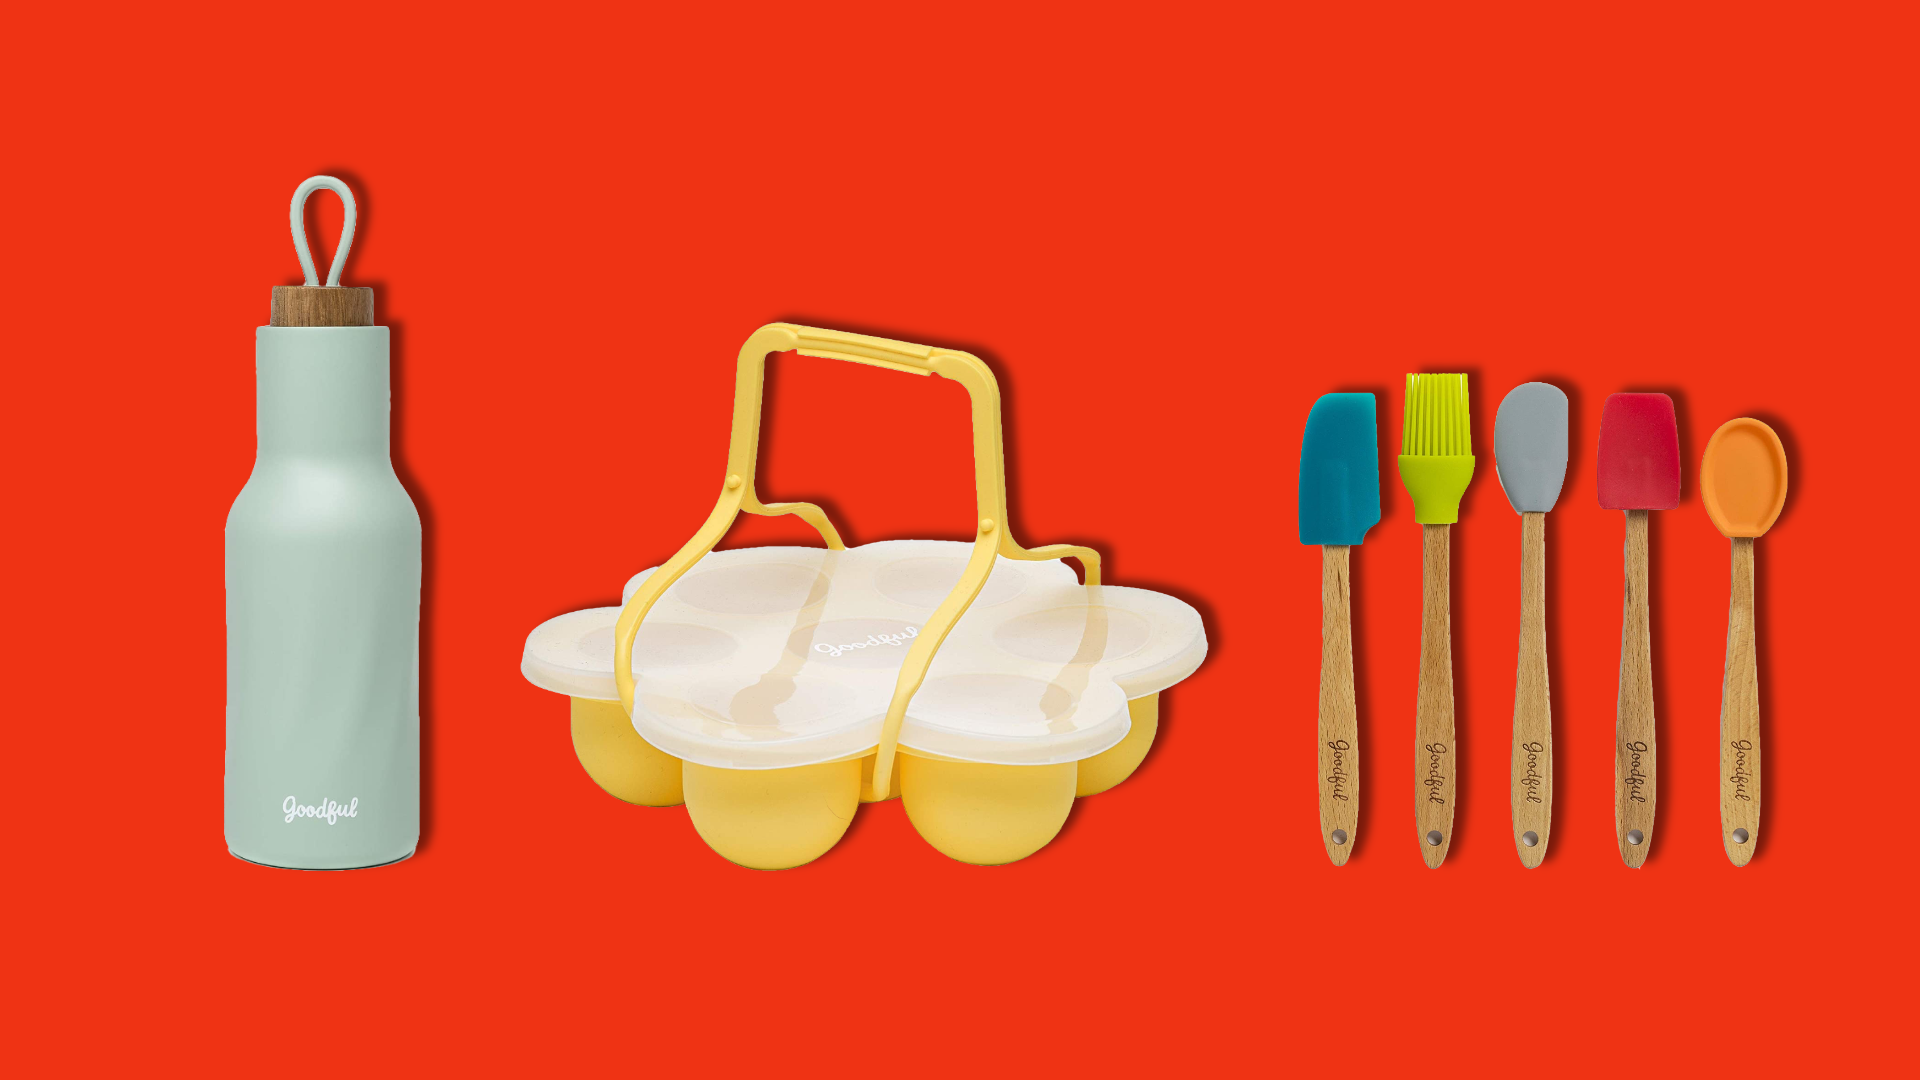 A water bottle, an egg mold, and miniature kitchen tools on a red background.